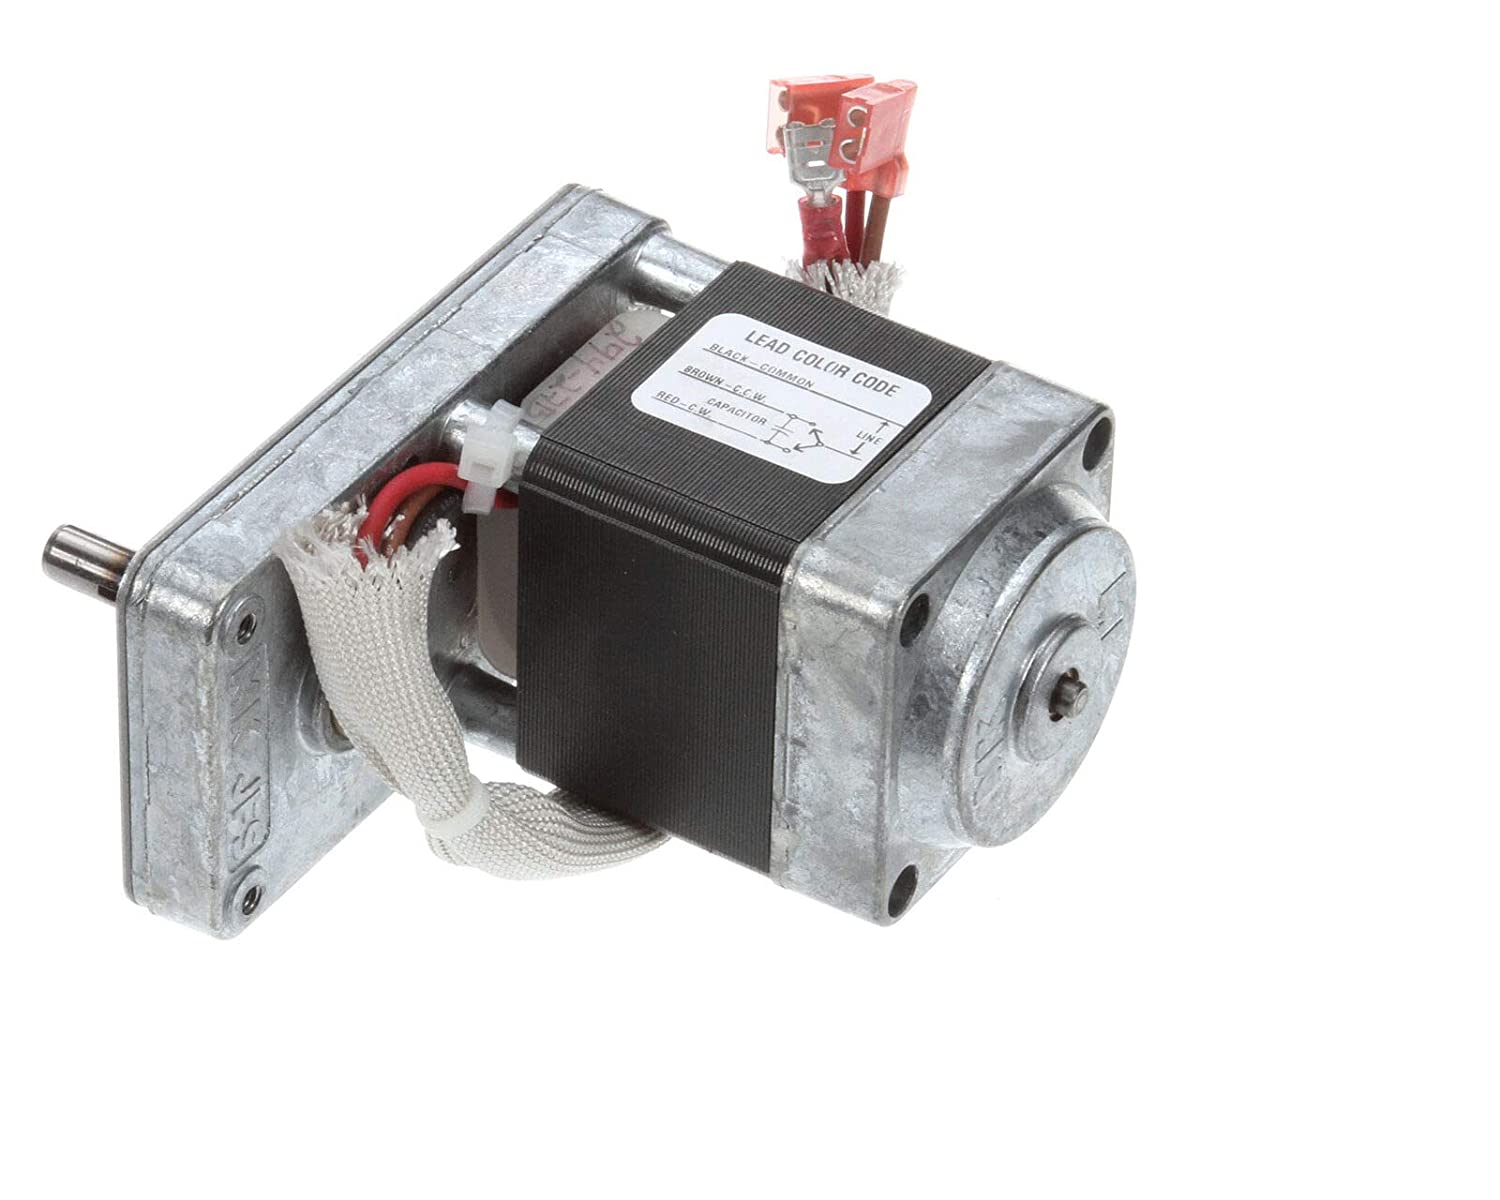 Frymaster 8068077 Discount mail order Mdlr Bl with Motor Cl Assembly Terminal B Regular discount